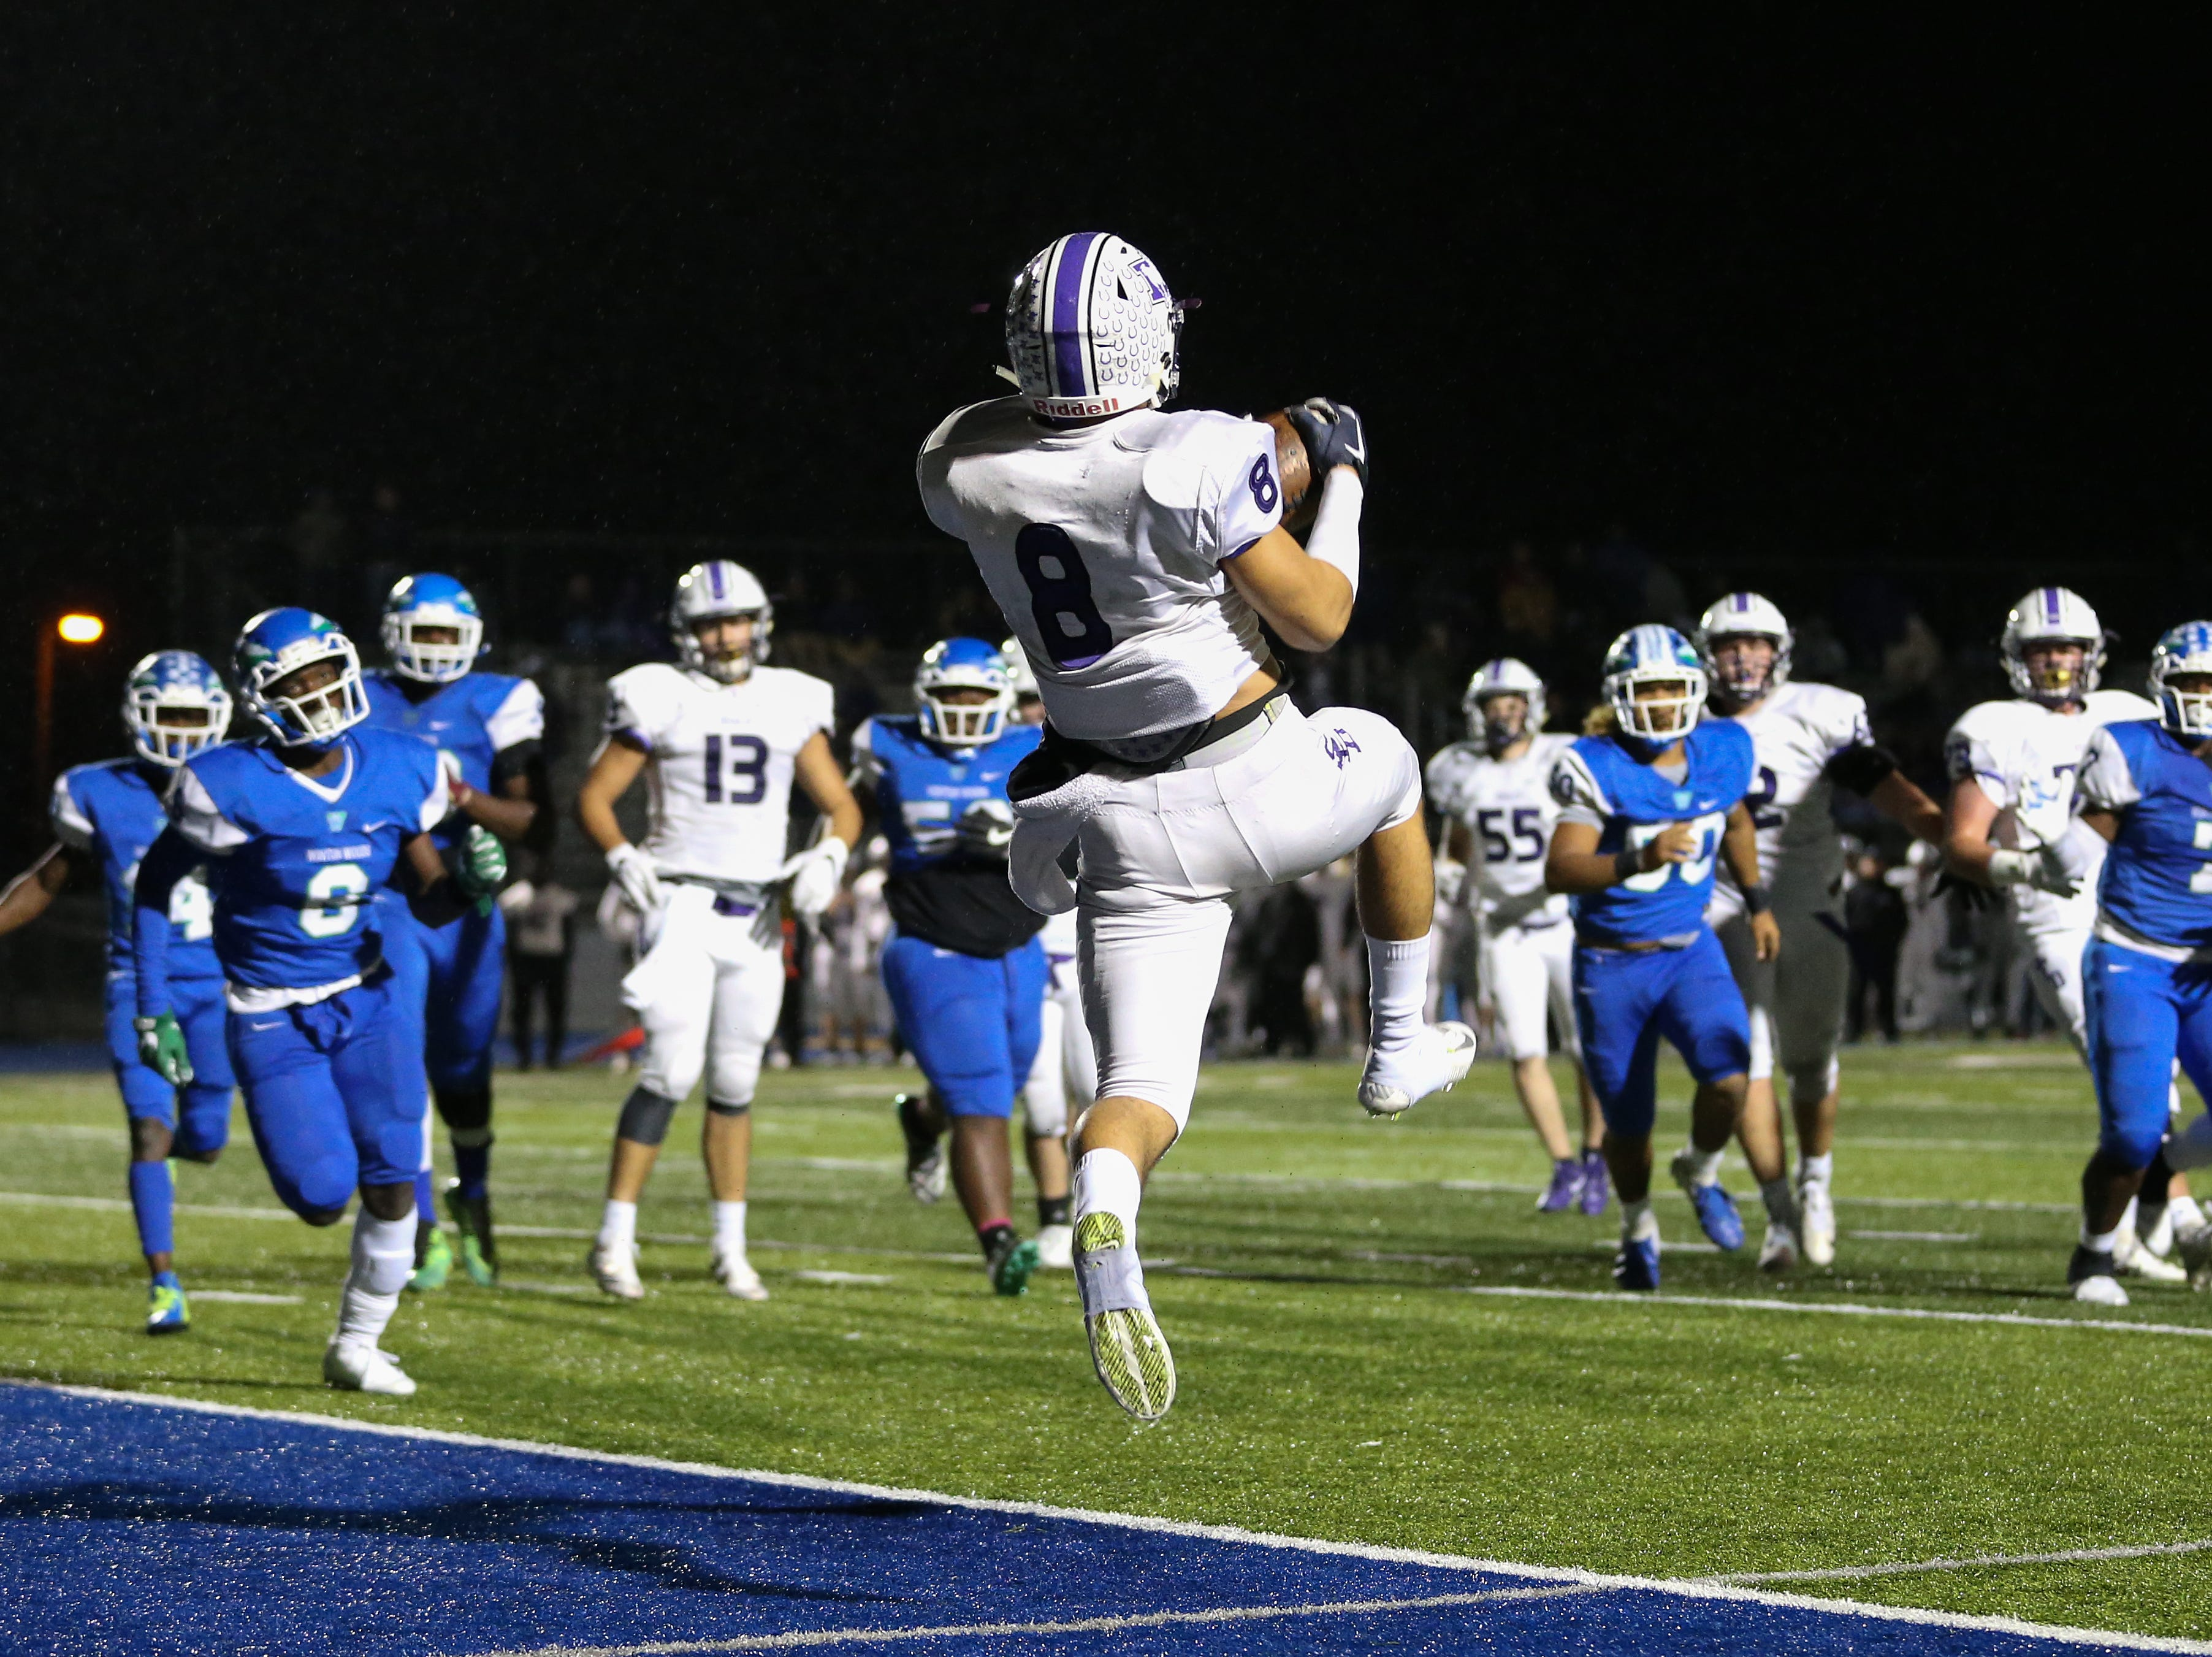 St. Francis de Sales Stallions wide receiver Anthony Sciarroni (8) scores a touchdown in the second quarter during a high school football game between St. Francis de Sales and Winton Woods, Friday, Oct. 19, 2018, at Winton Woods High School in Forest Park, Ohio.